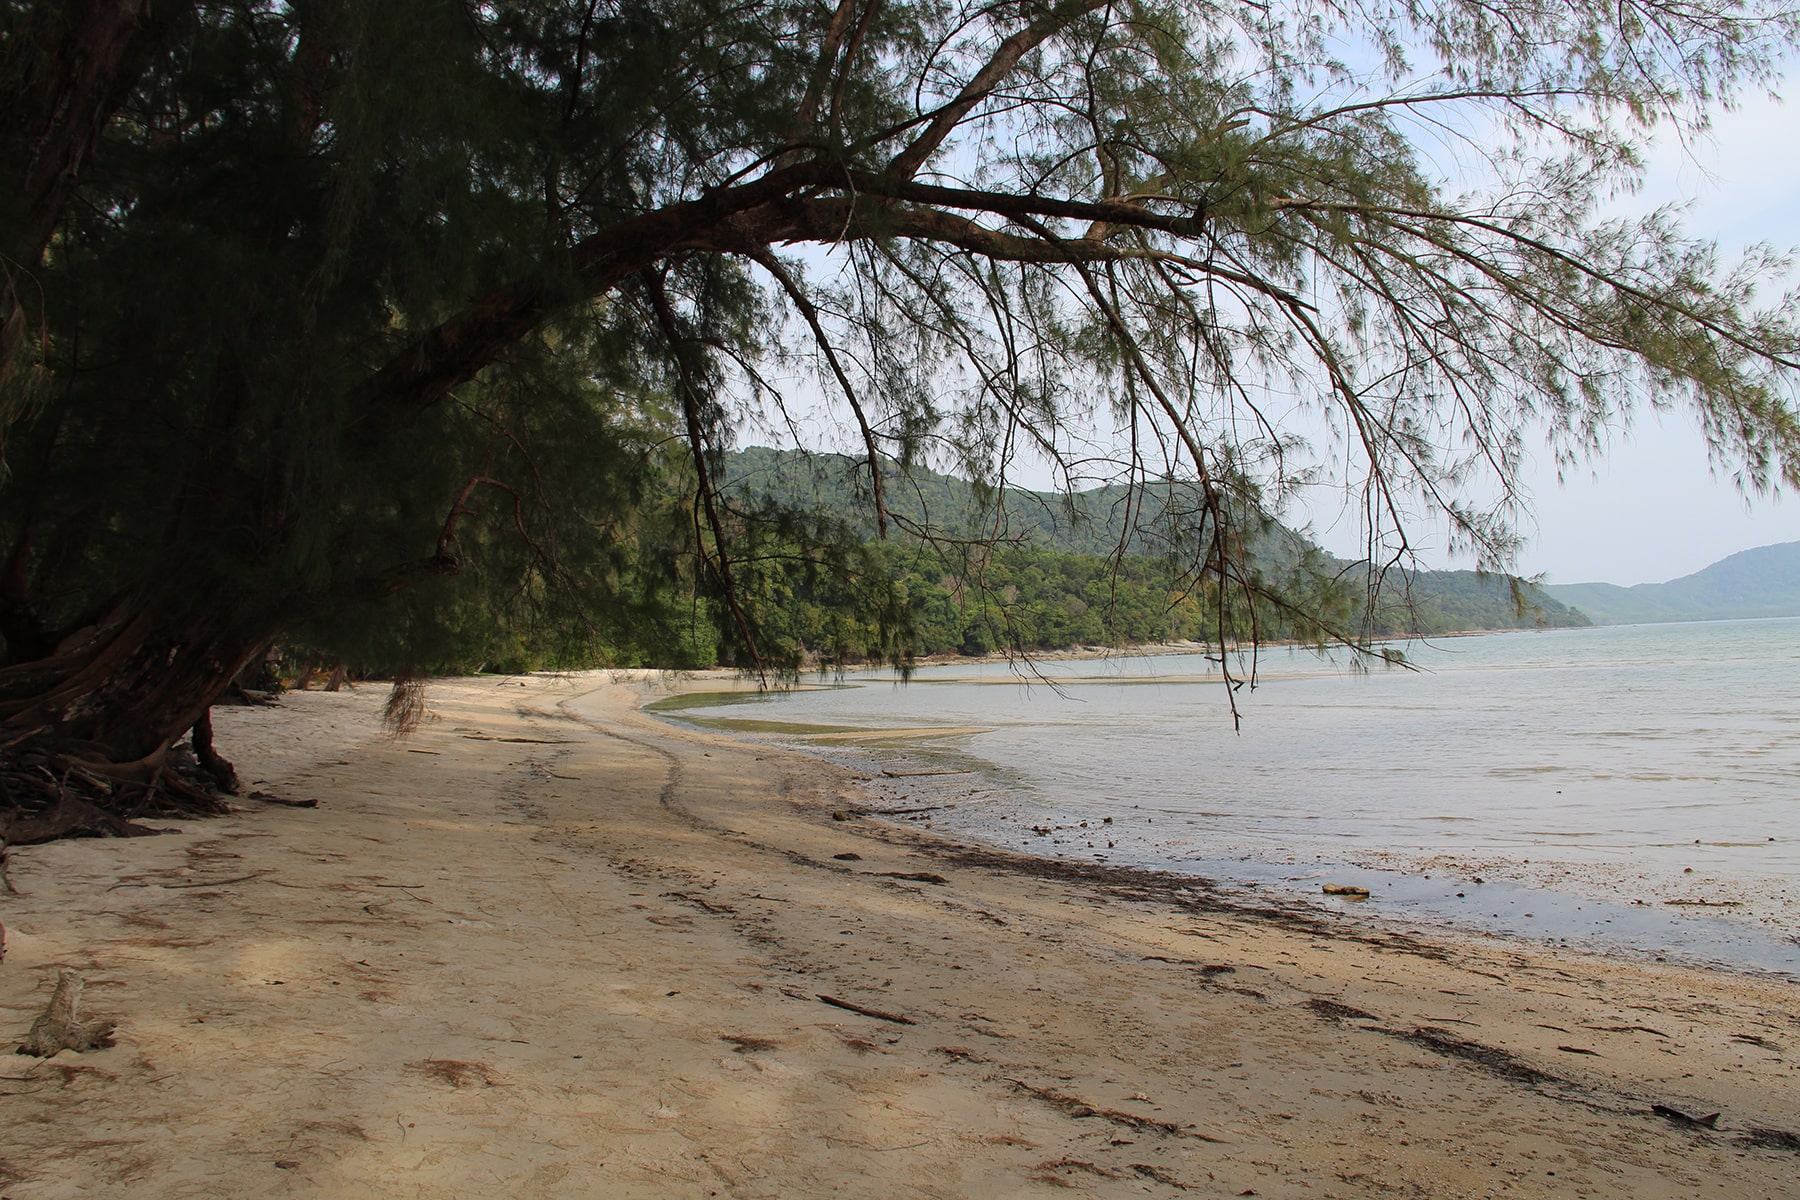 Khlong Son beach (Son Bay Beach) in Koh Yao Yai with trees